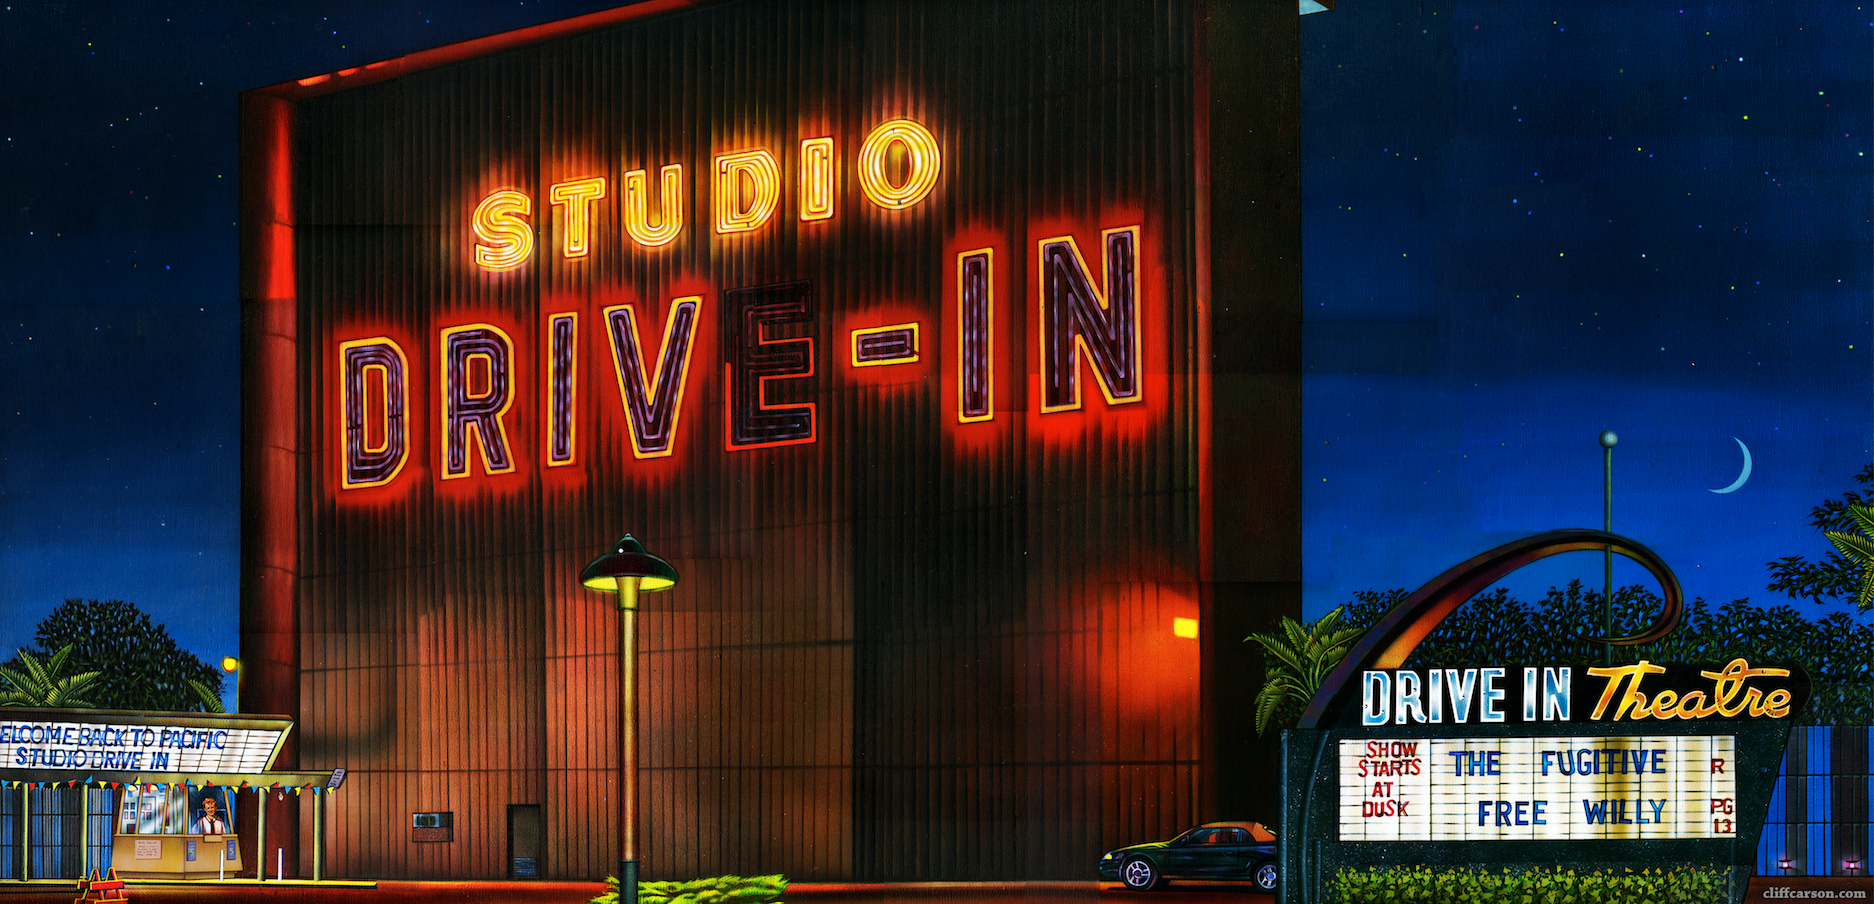 Canvas Painting Of Studio Drive In Movie Theatre In Culver City California By Cliff Carson Drive In Movie Theater Culver City Drive In Theater